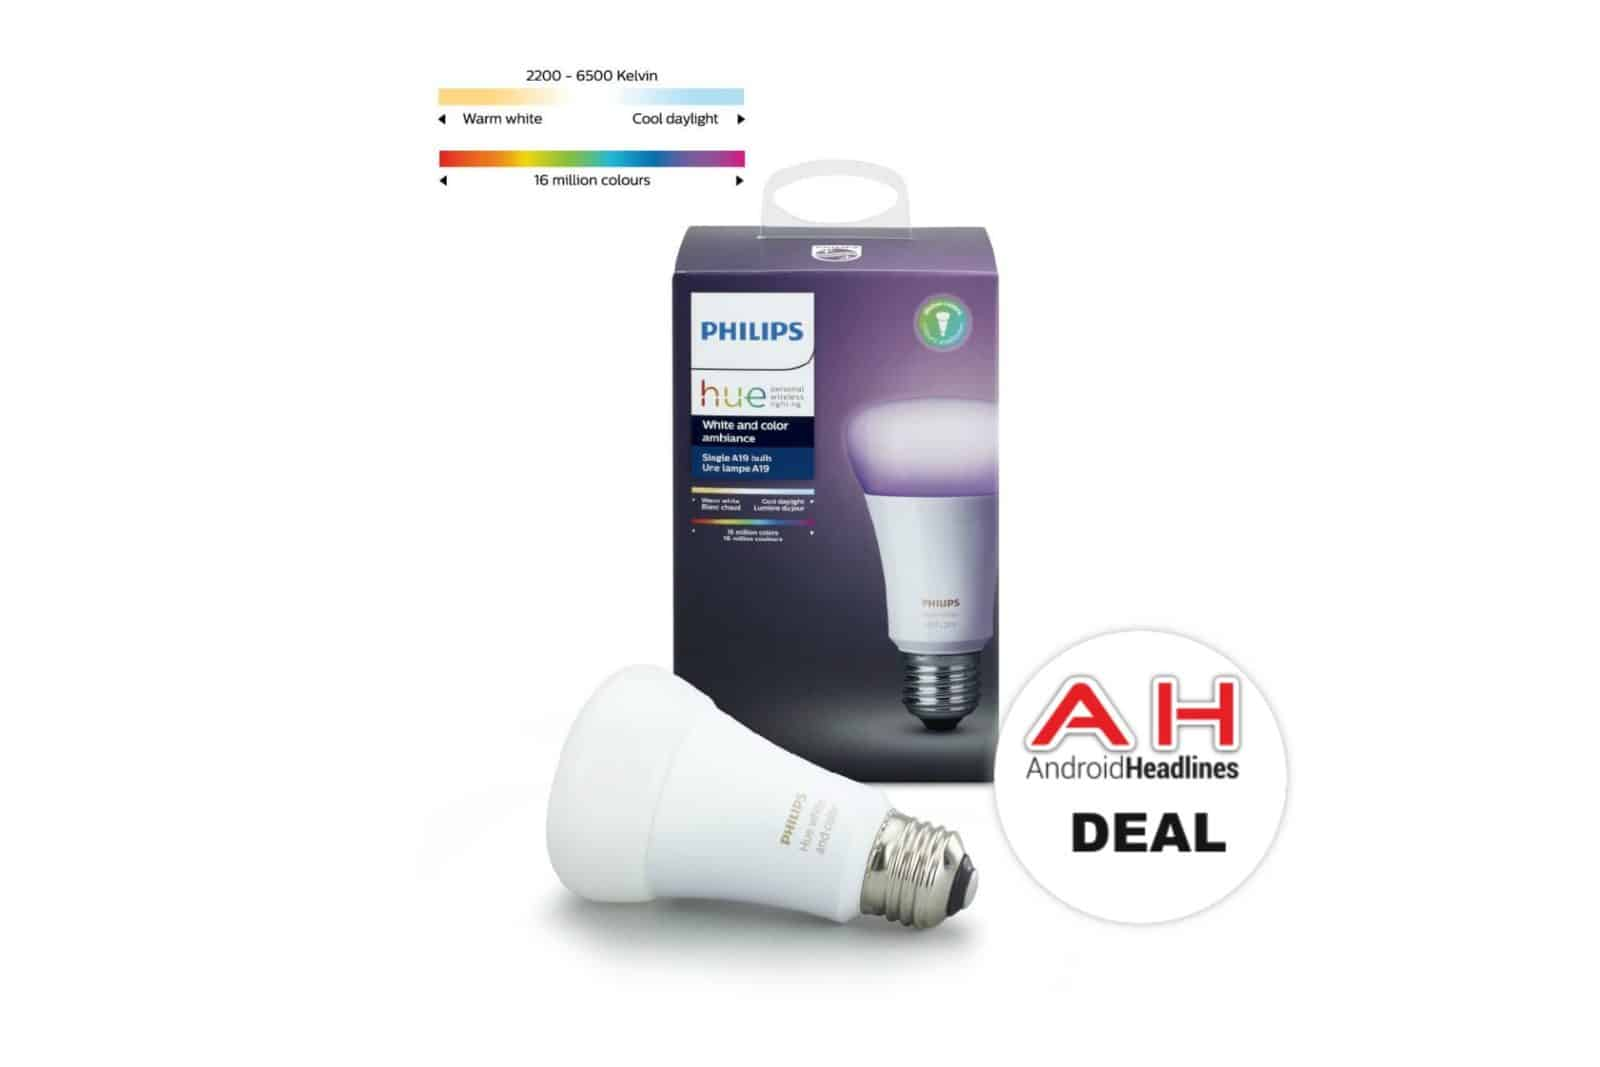 Deal philips hue light bulbs light strips more on sale july deal philips hue light bulbs light strips more on sale july 2018 aloadofball Gallery